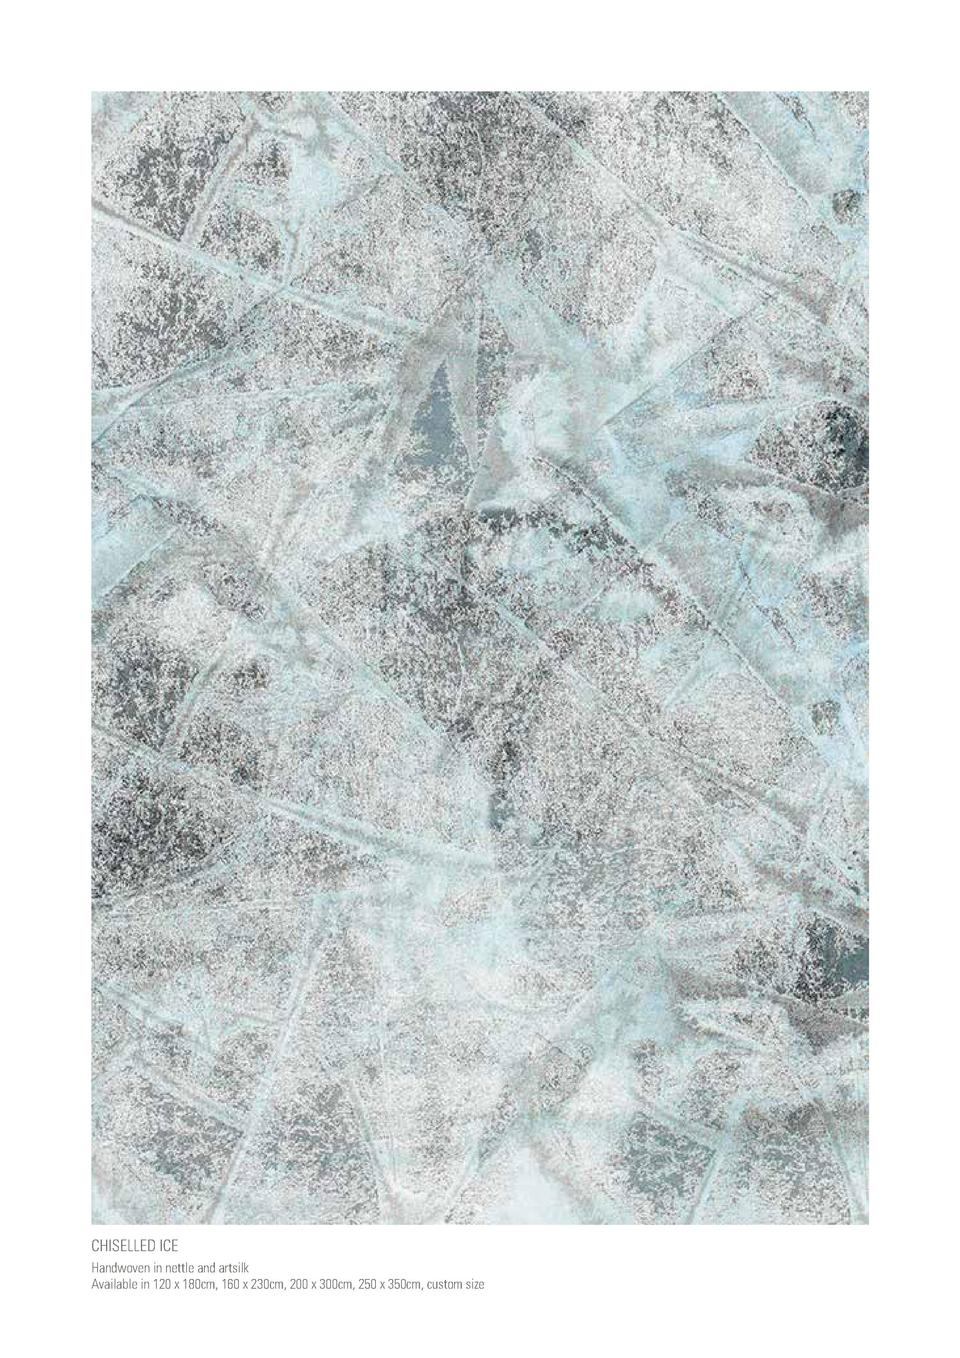 CHISELLED ICE Handwoven in nettle and artsilk Available in 120 x 180cm, 160 x 230cm, 200 x 300cm, 250 x 350cm, custom size...